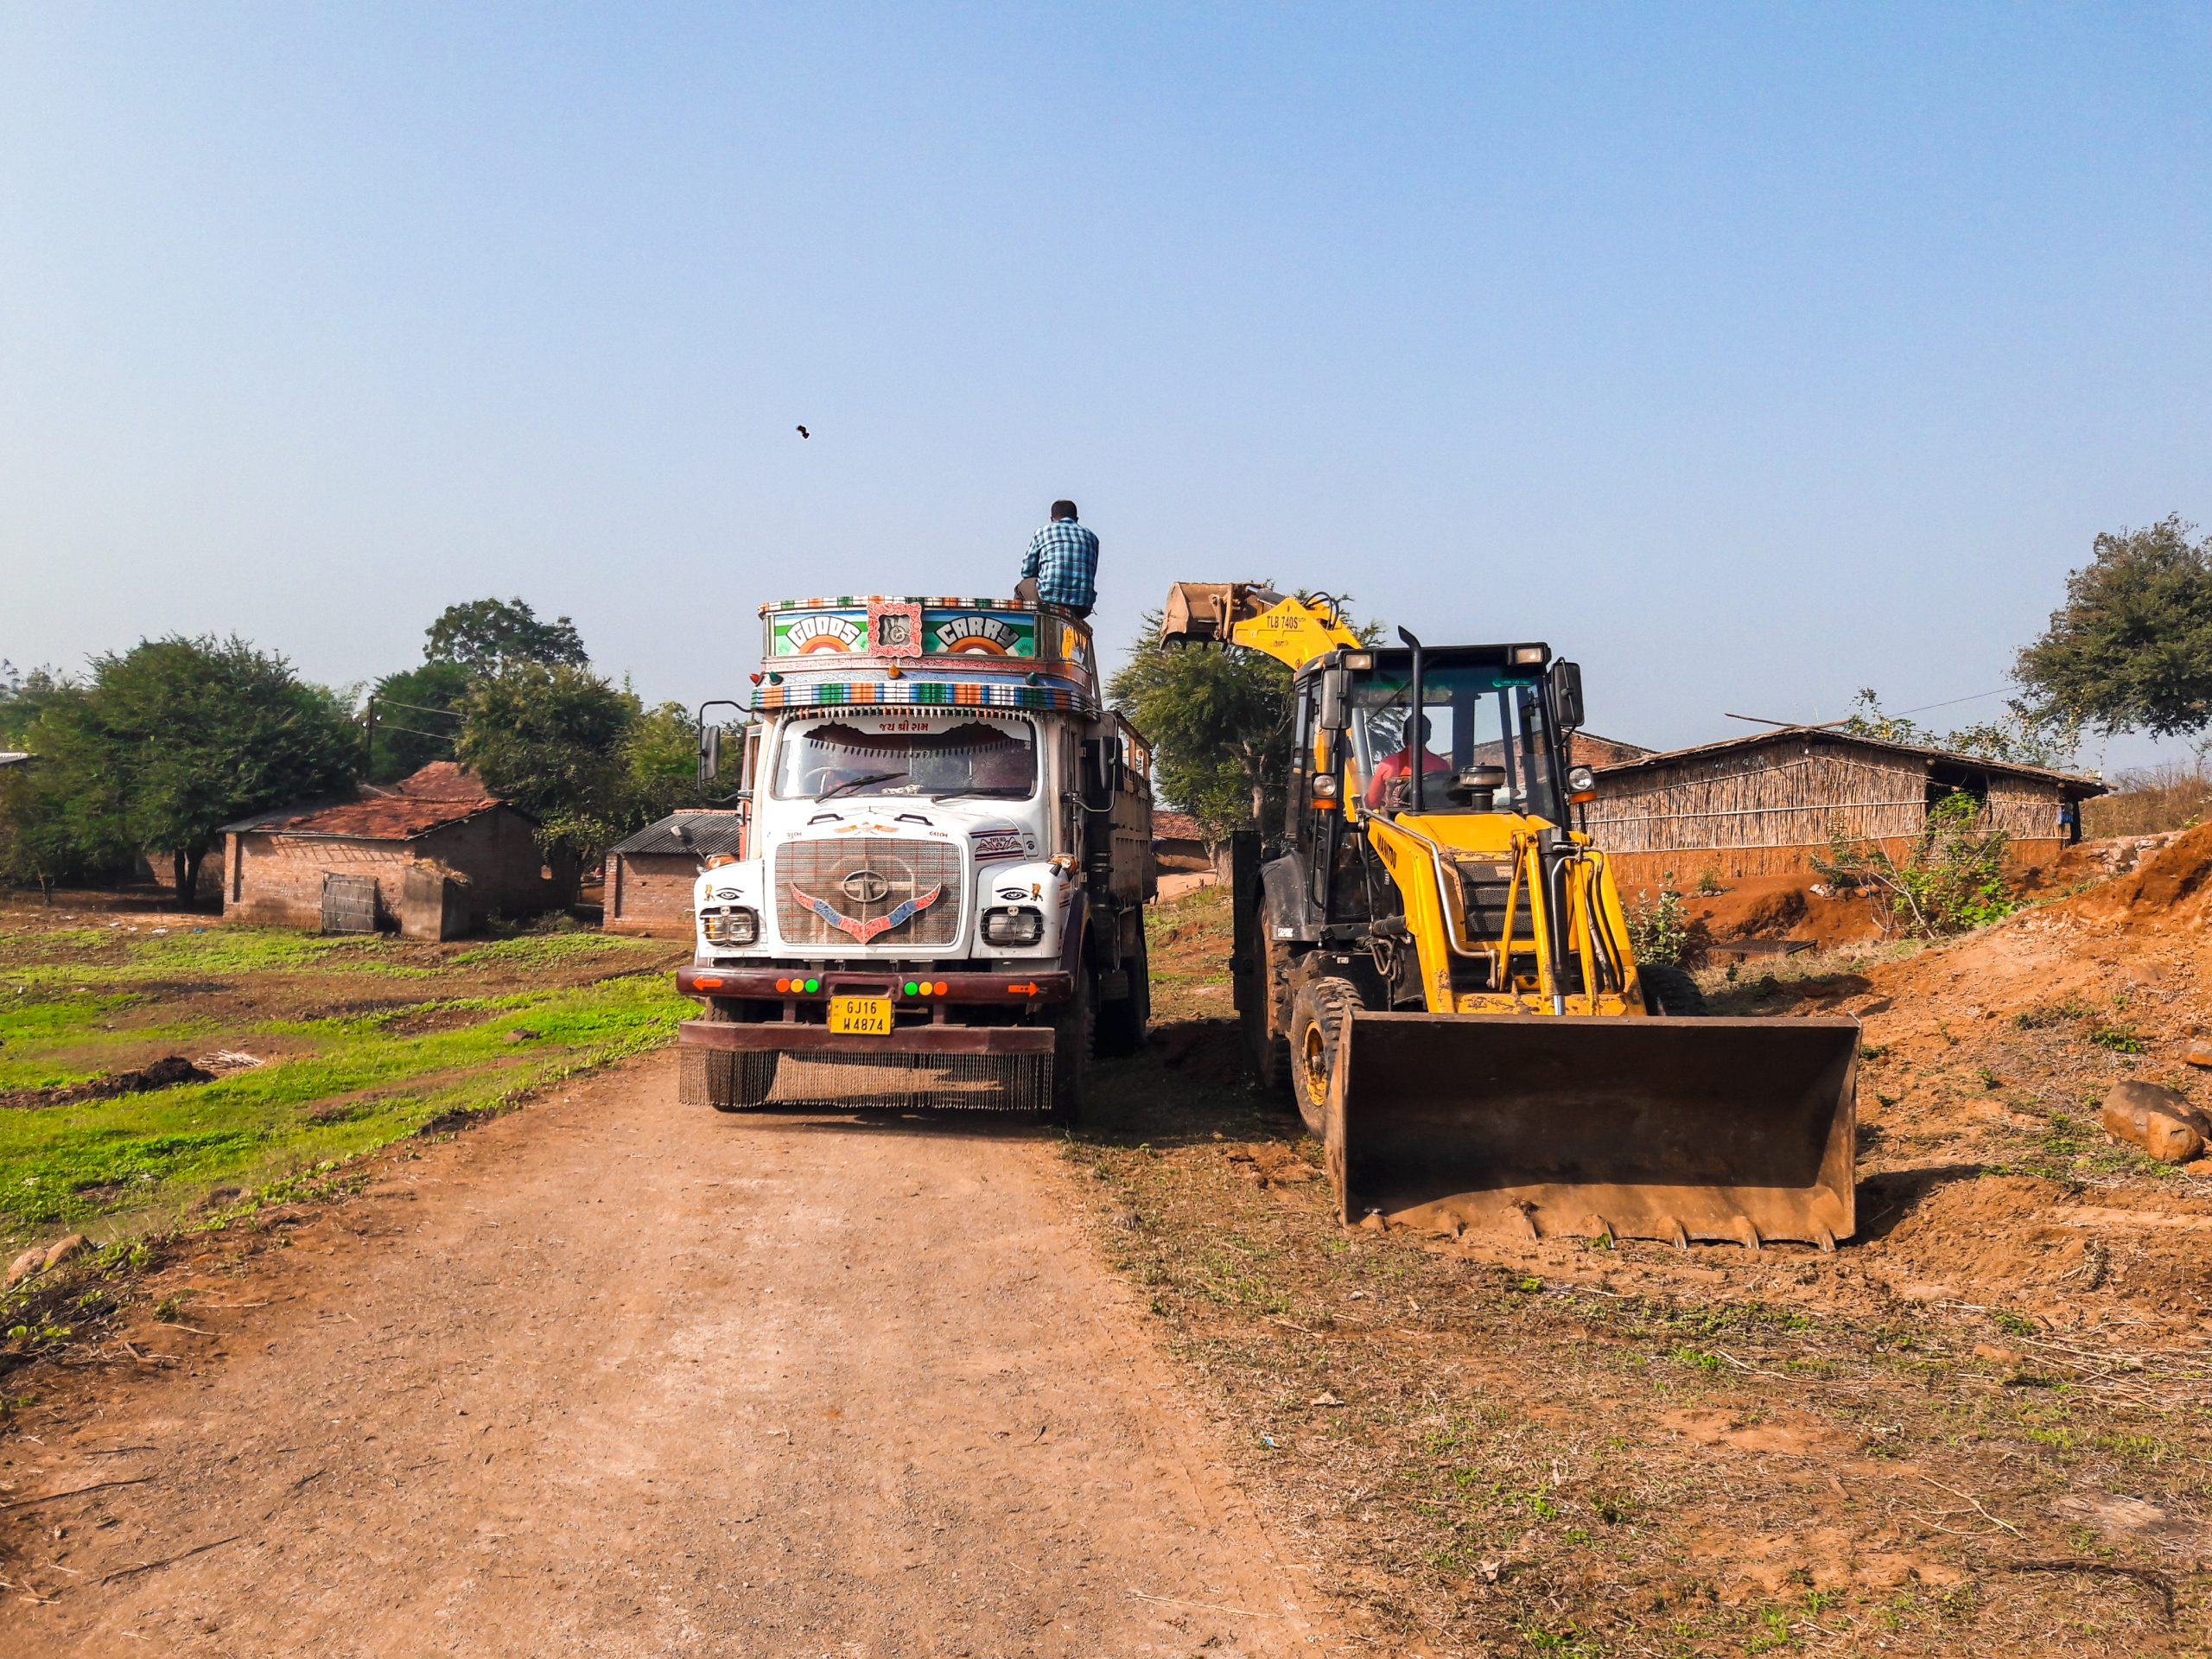 Truck and bulldozer at the farm